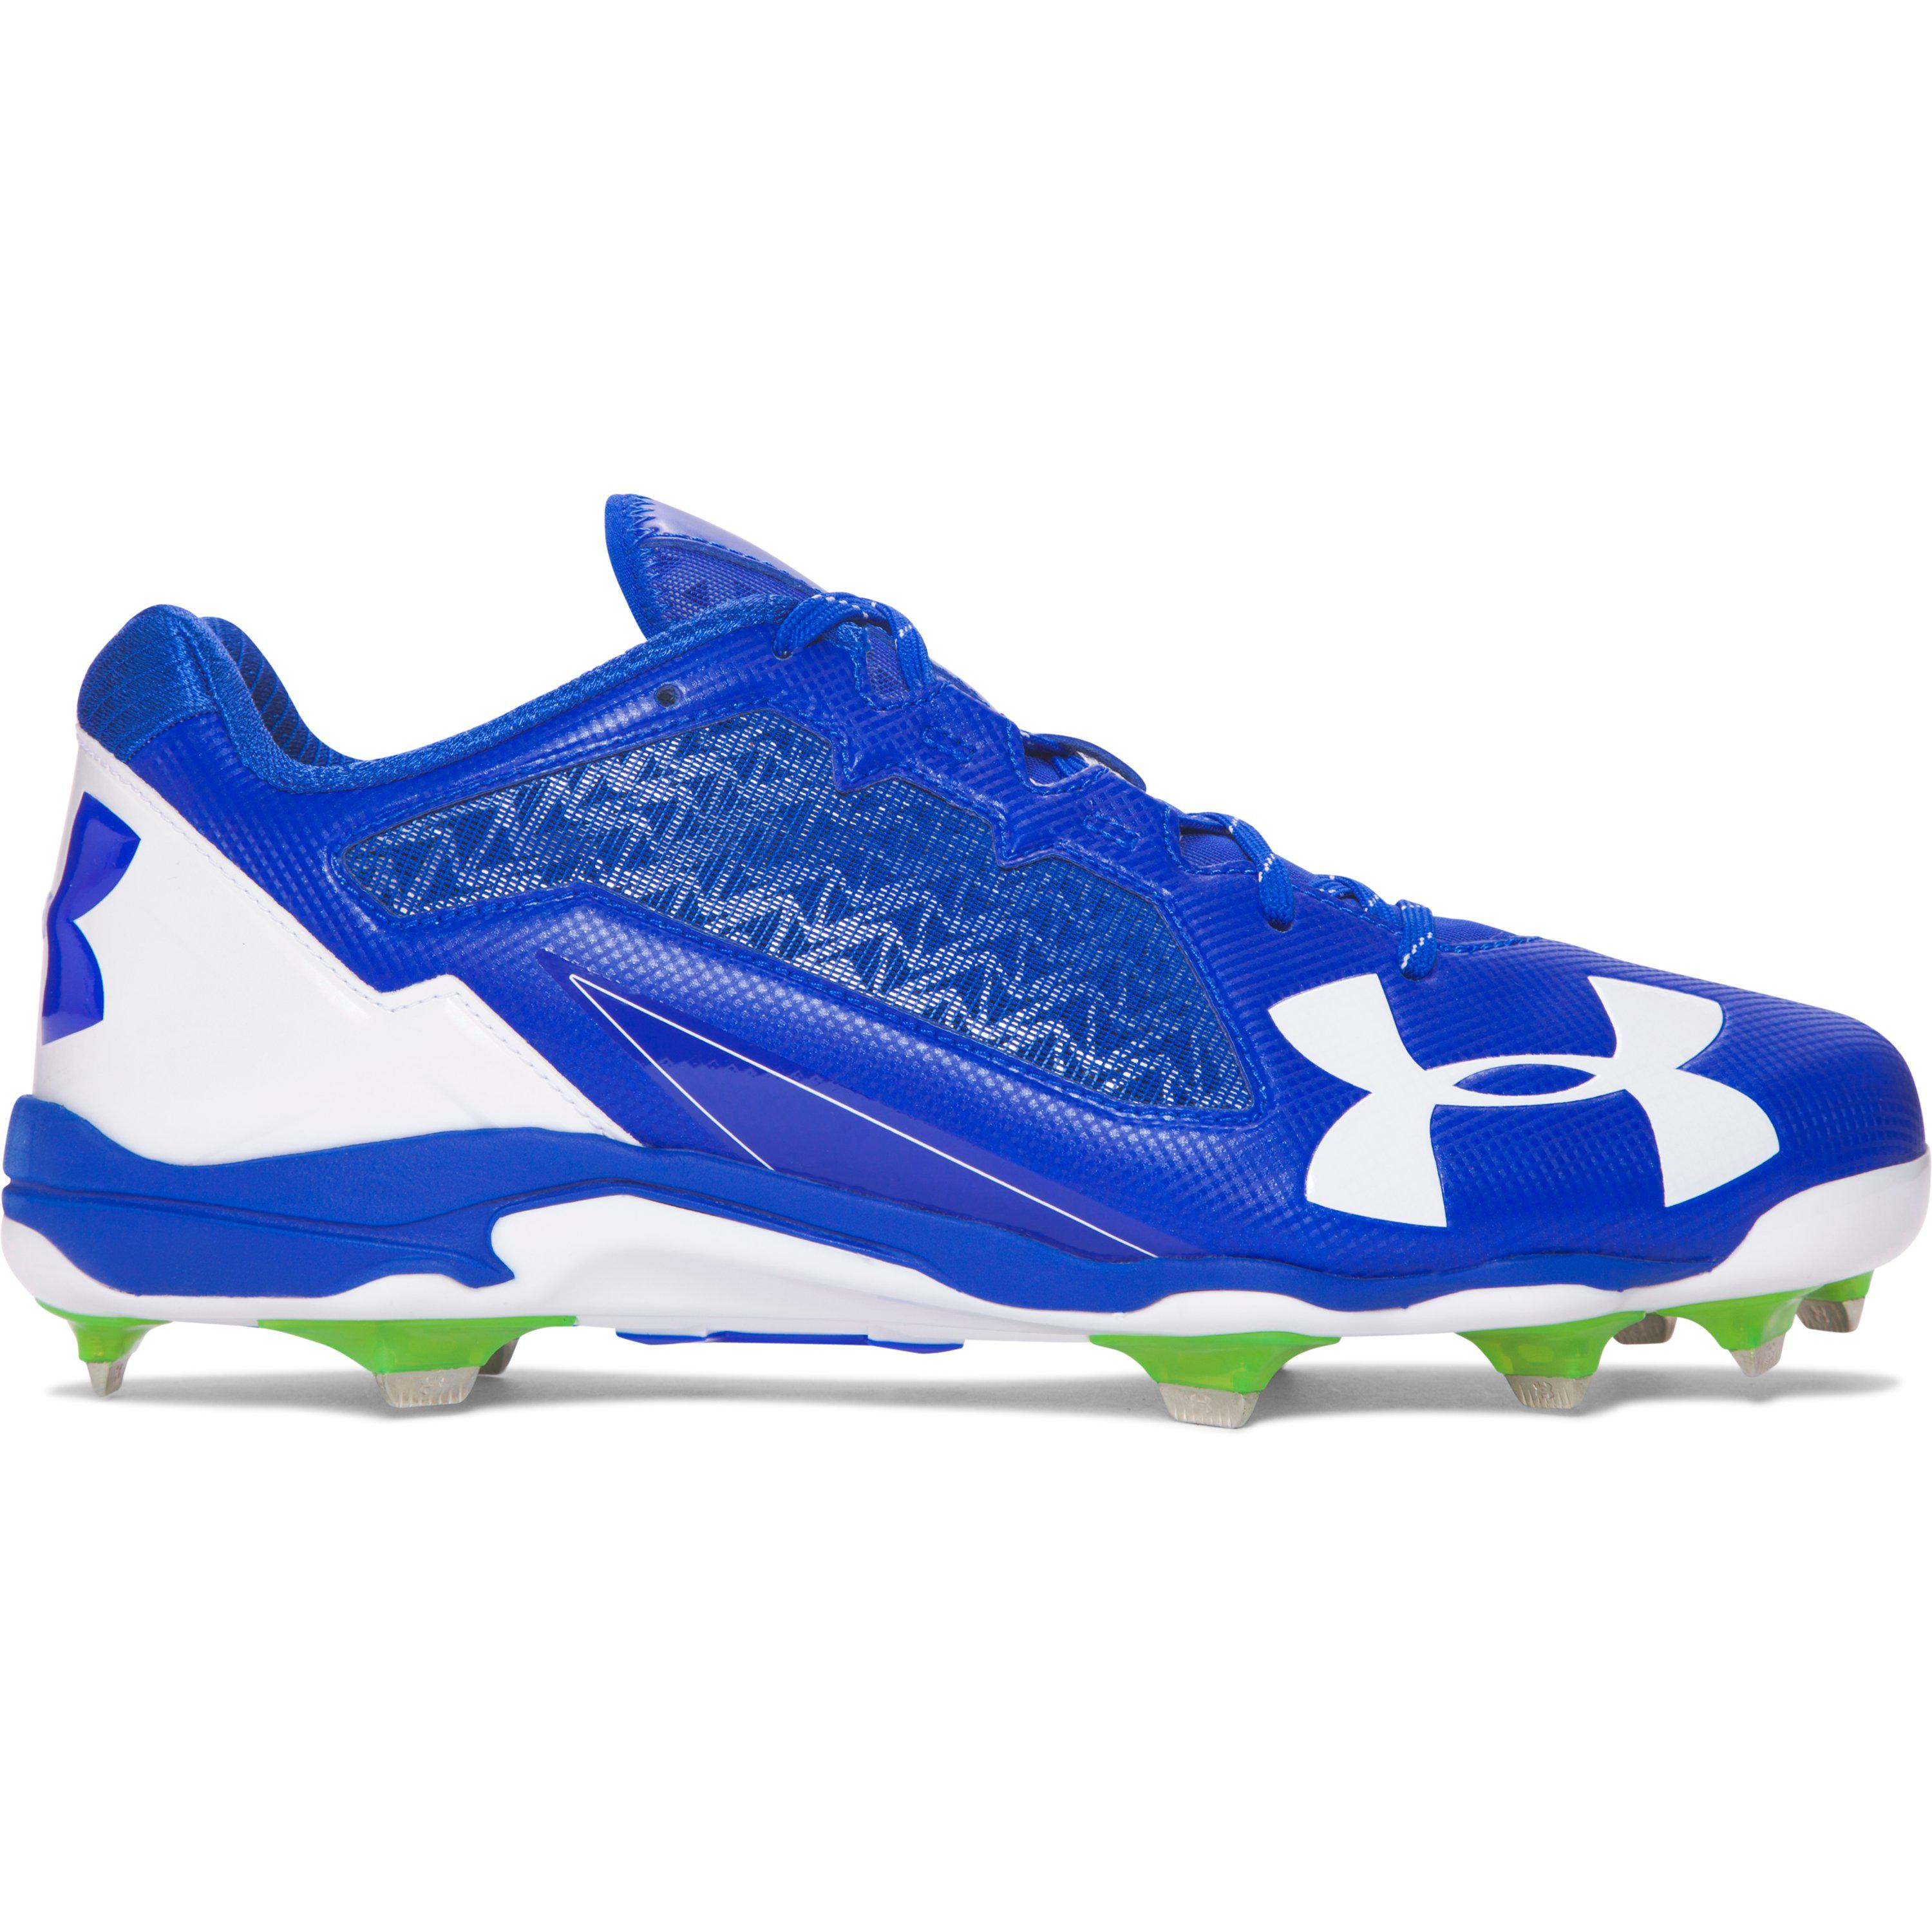 Under Armour. Men's Blue Deception Low Diamondtips